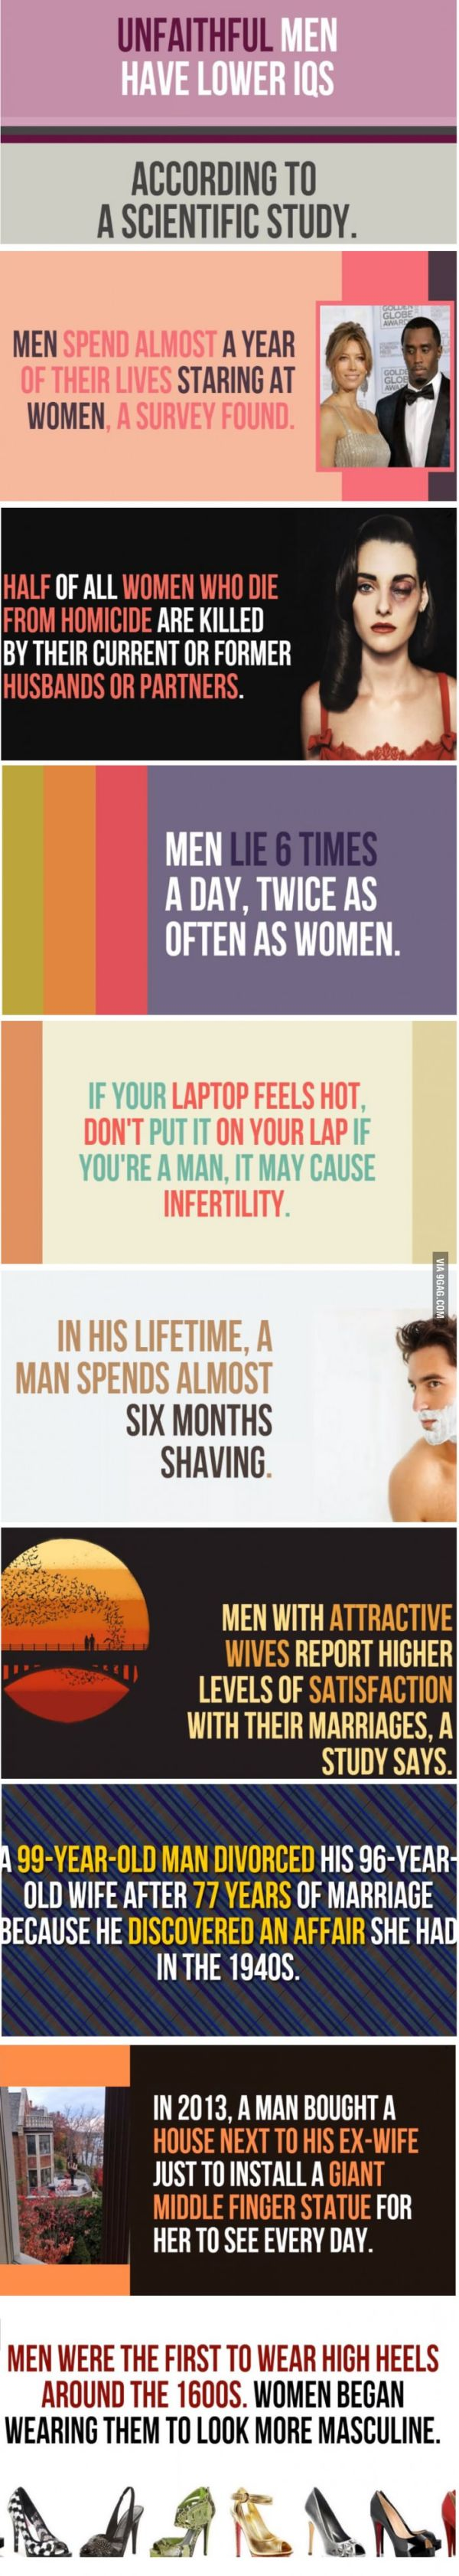 10 Random Facts About Men Facts About Guys Fun Facts Facts